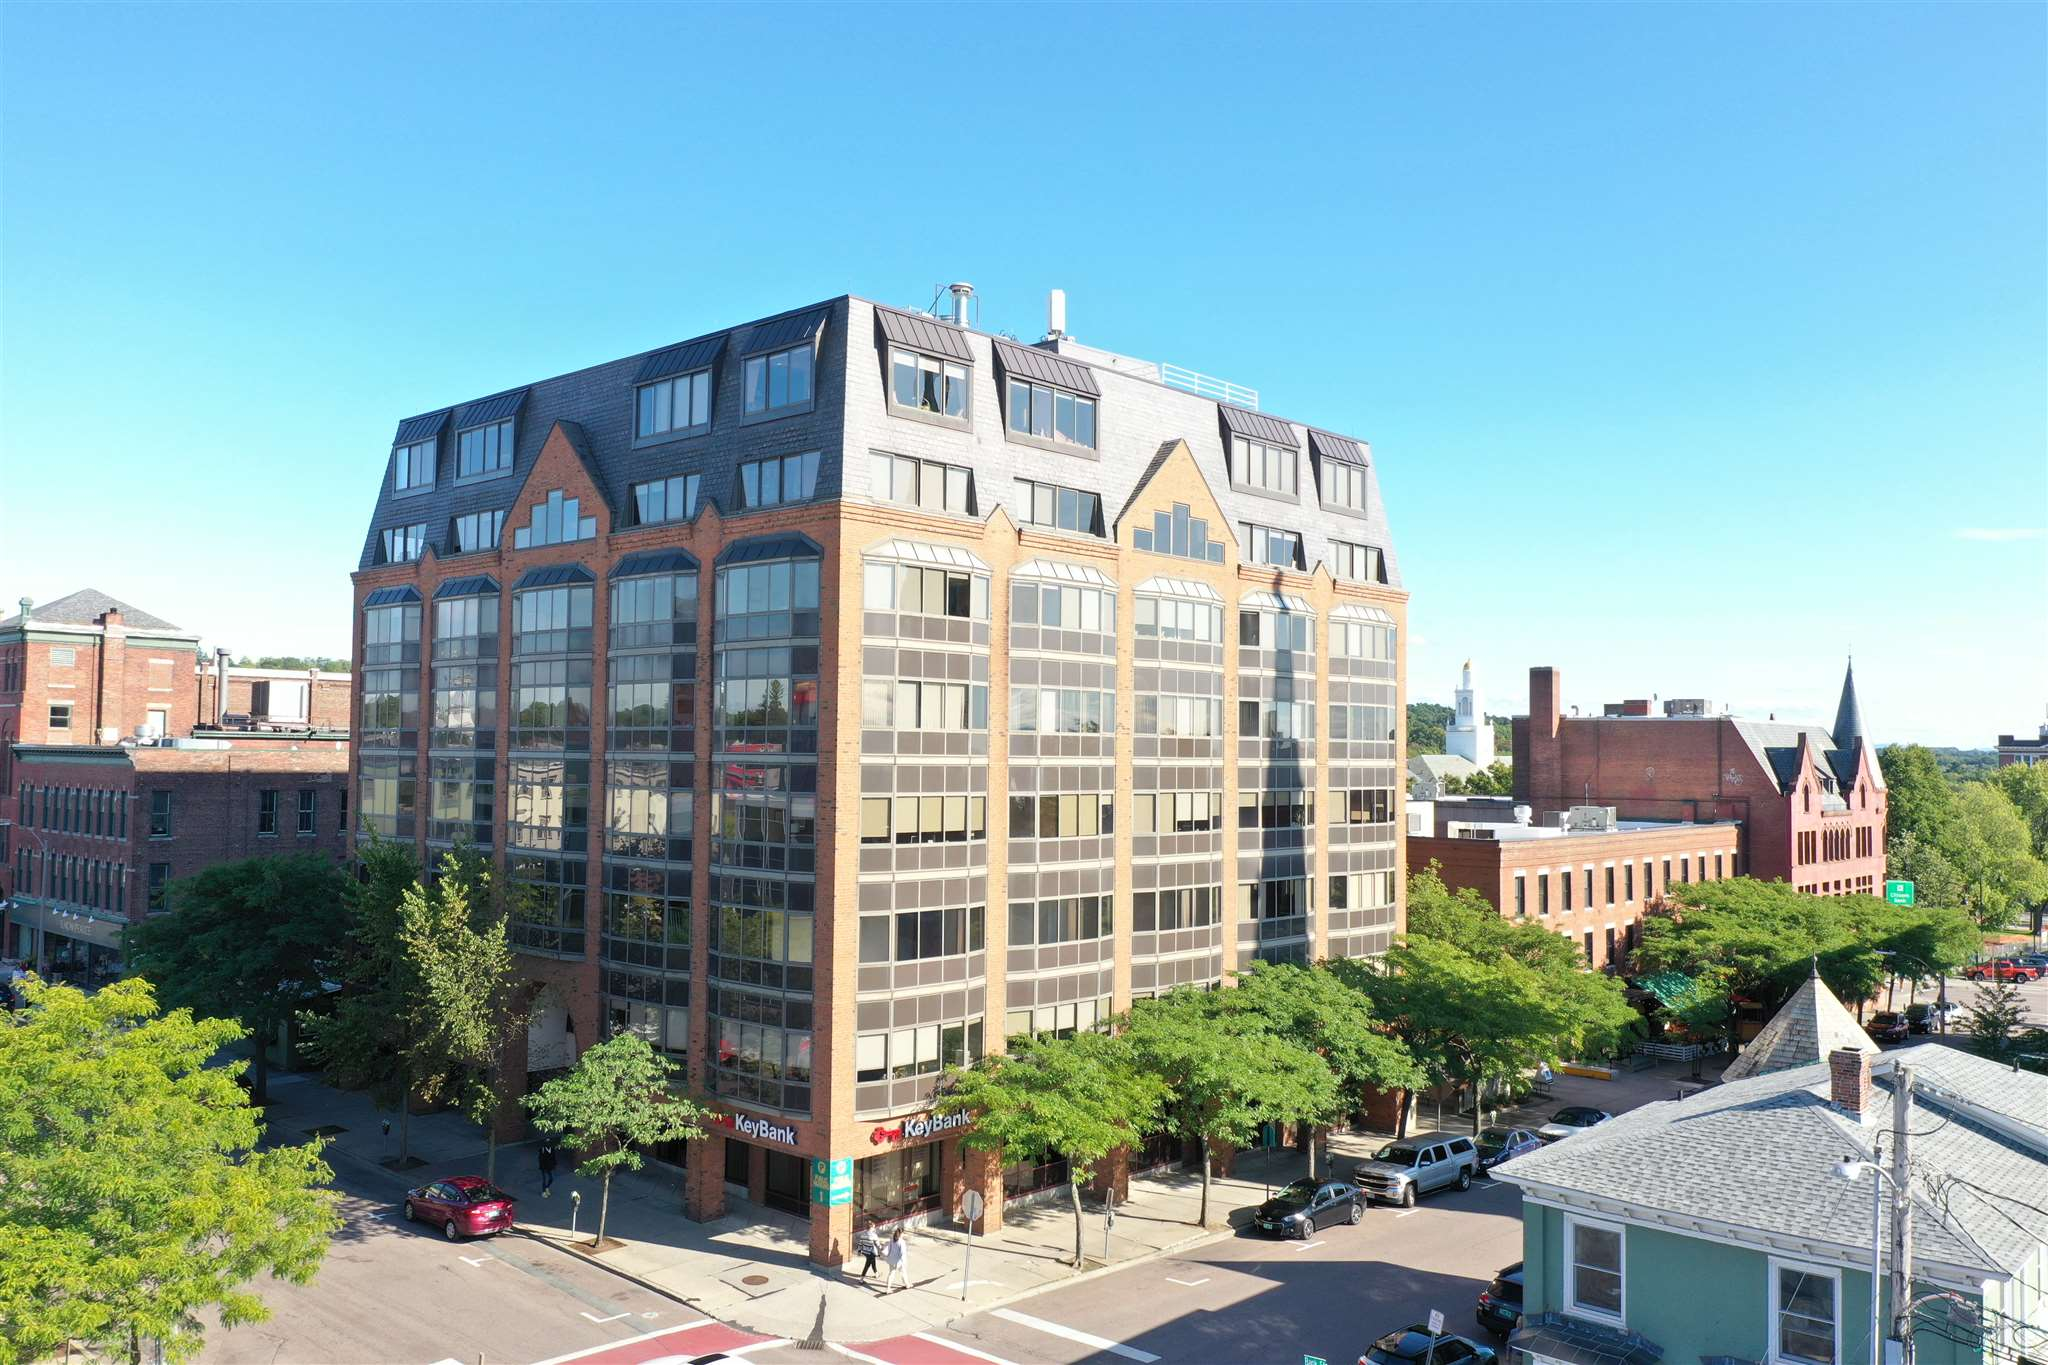 Corporate Plaza is  one of Burlington's most professional and well located office buildings.  This 4th floor office condominium unit consists of approximately 1,939 usable square feet. The condo unit is currently leased to AON Service Corporation with a lease expiration of 09/13/21.